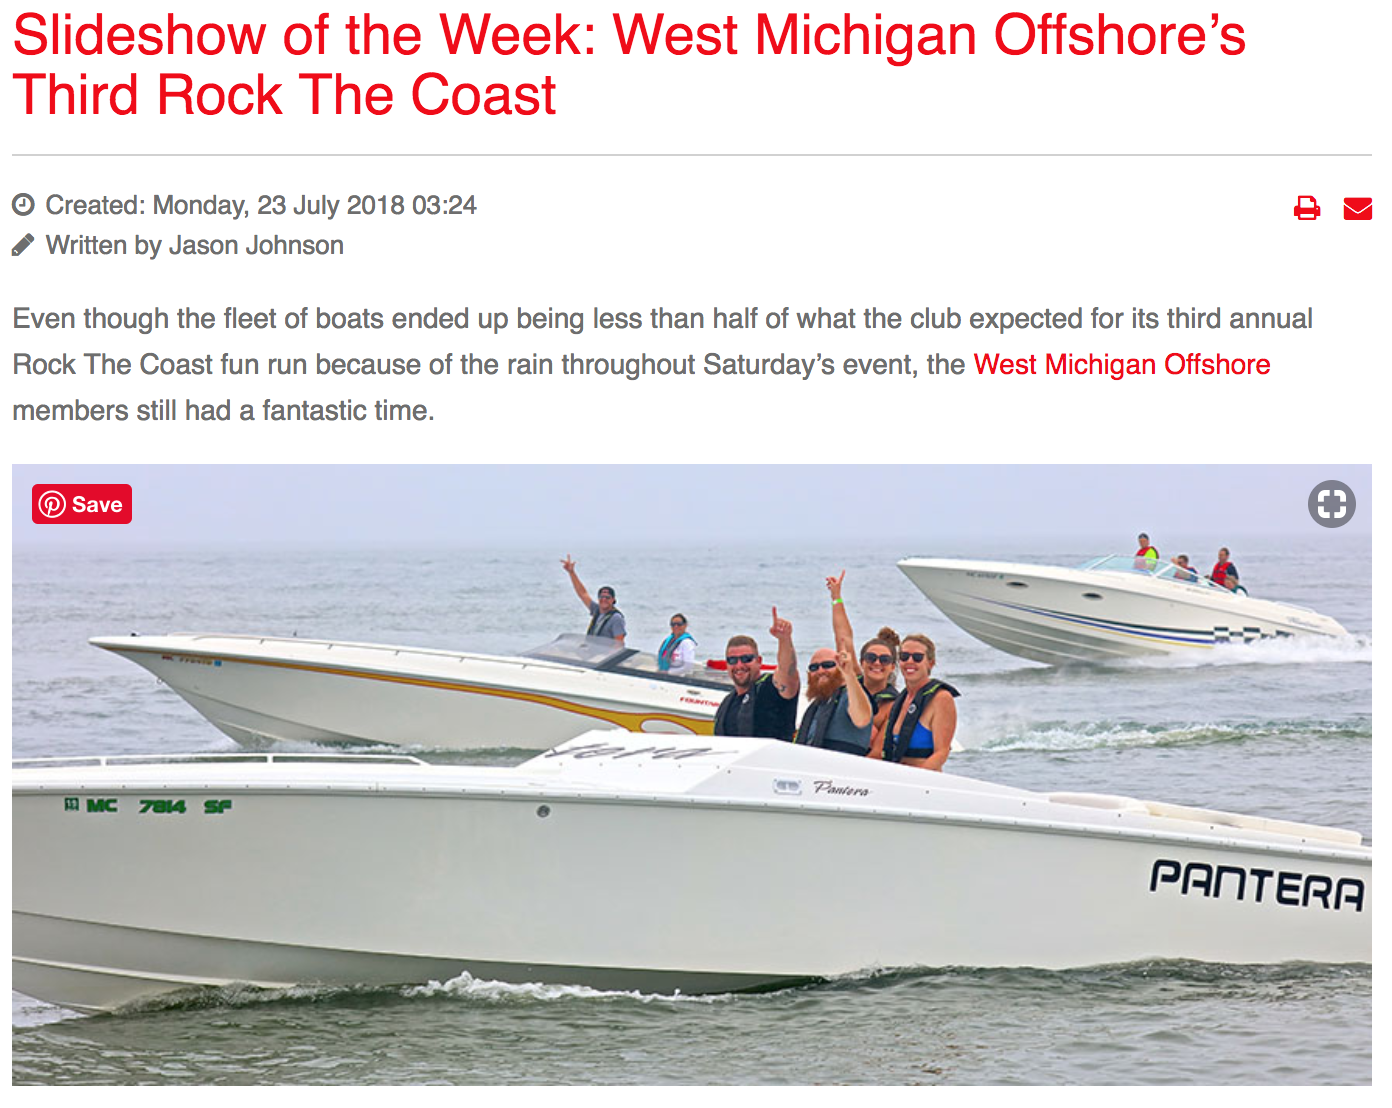 Slideshow of the Week: West Michigan Offshore's Third Rock The Coast -